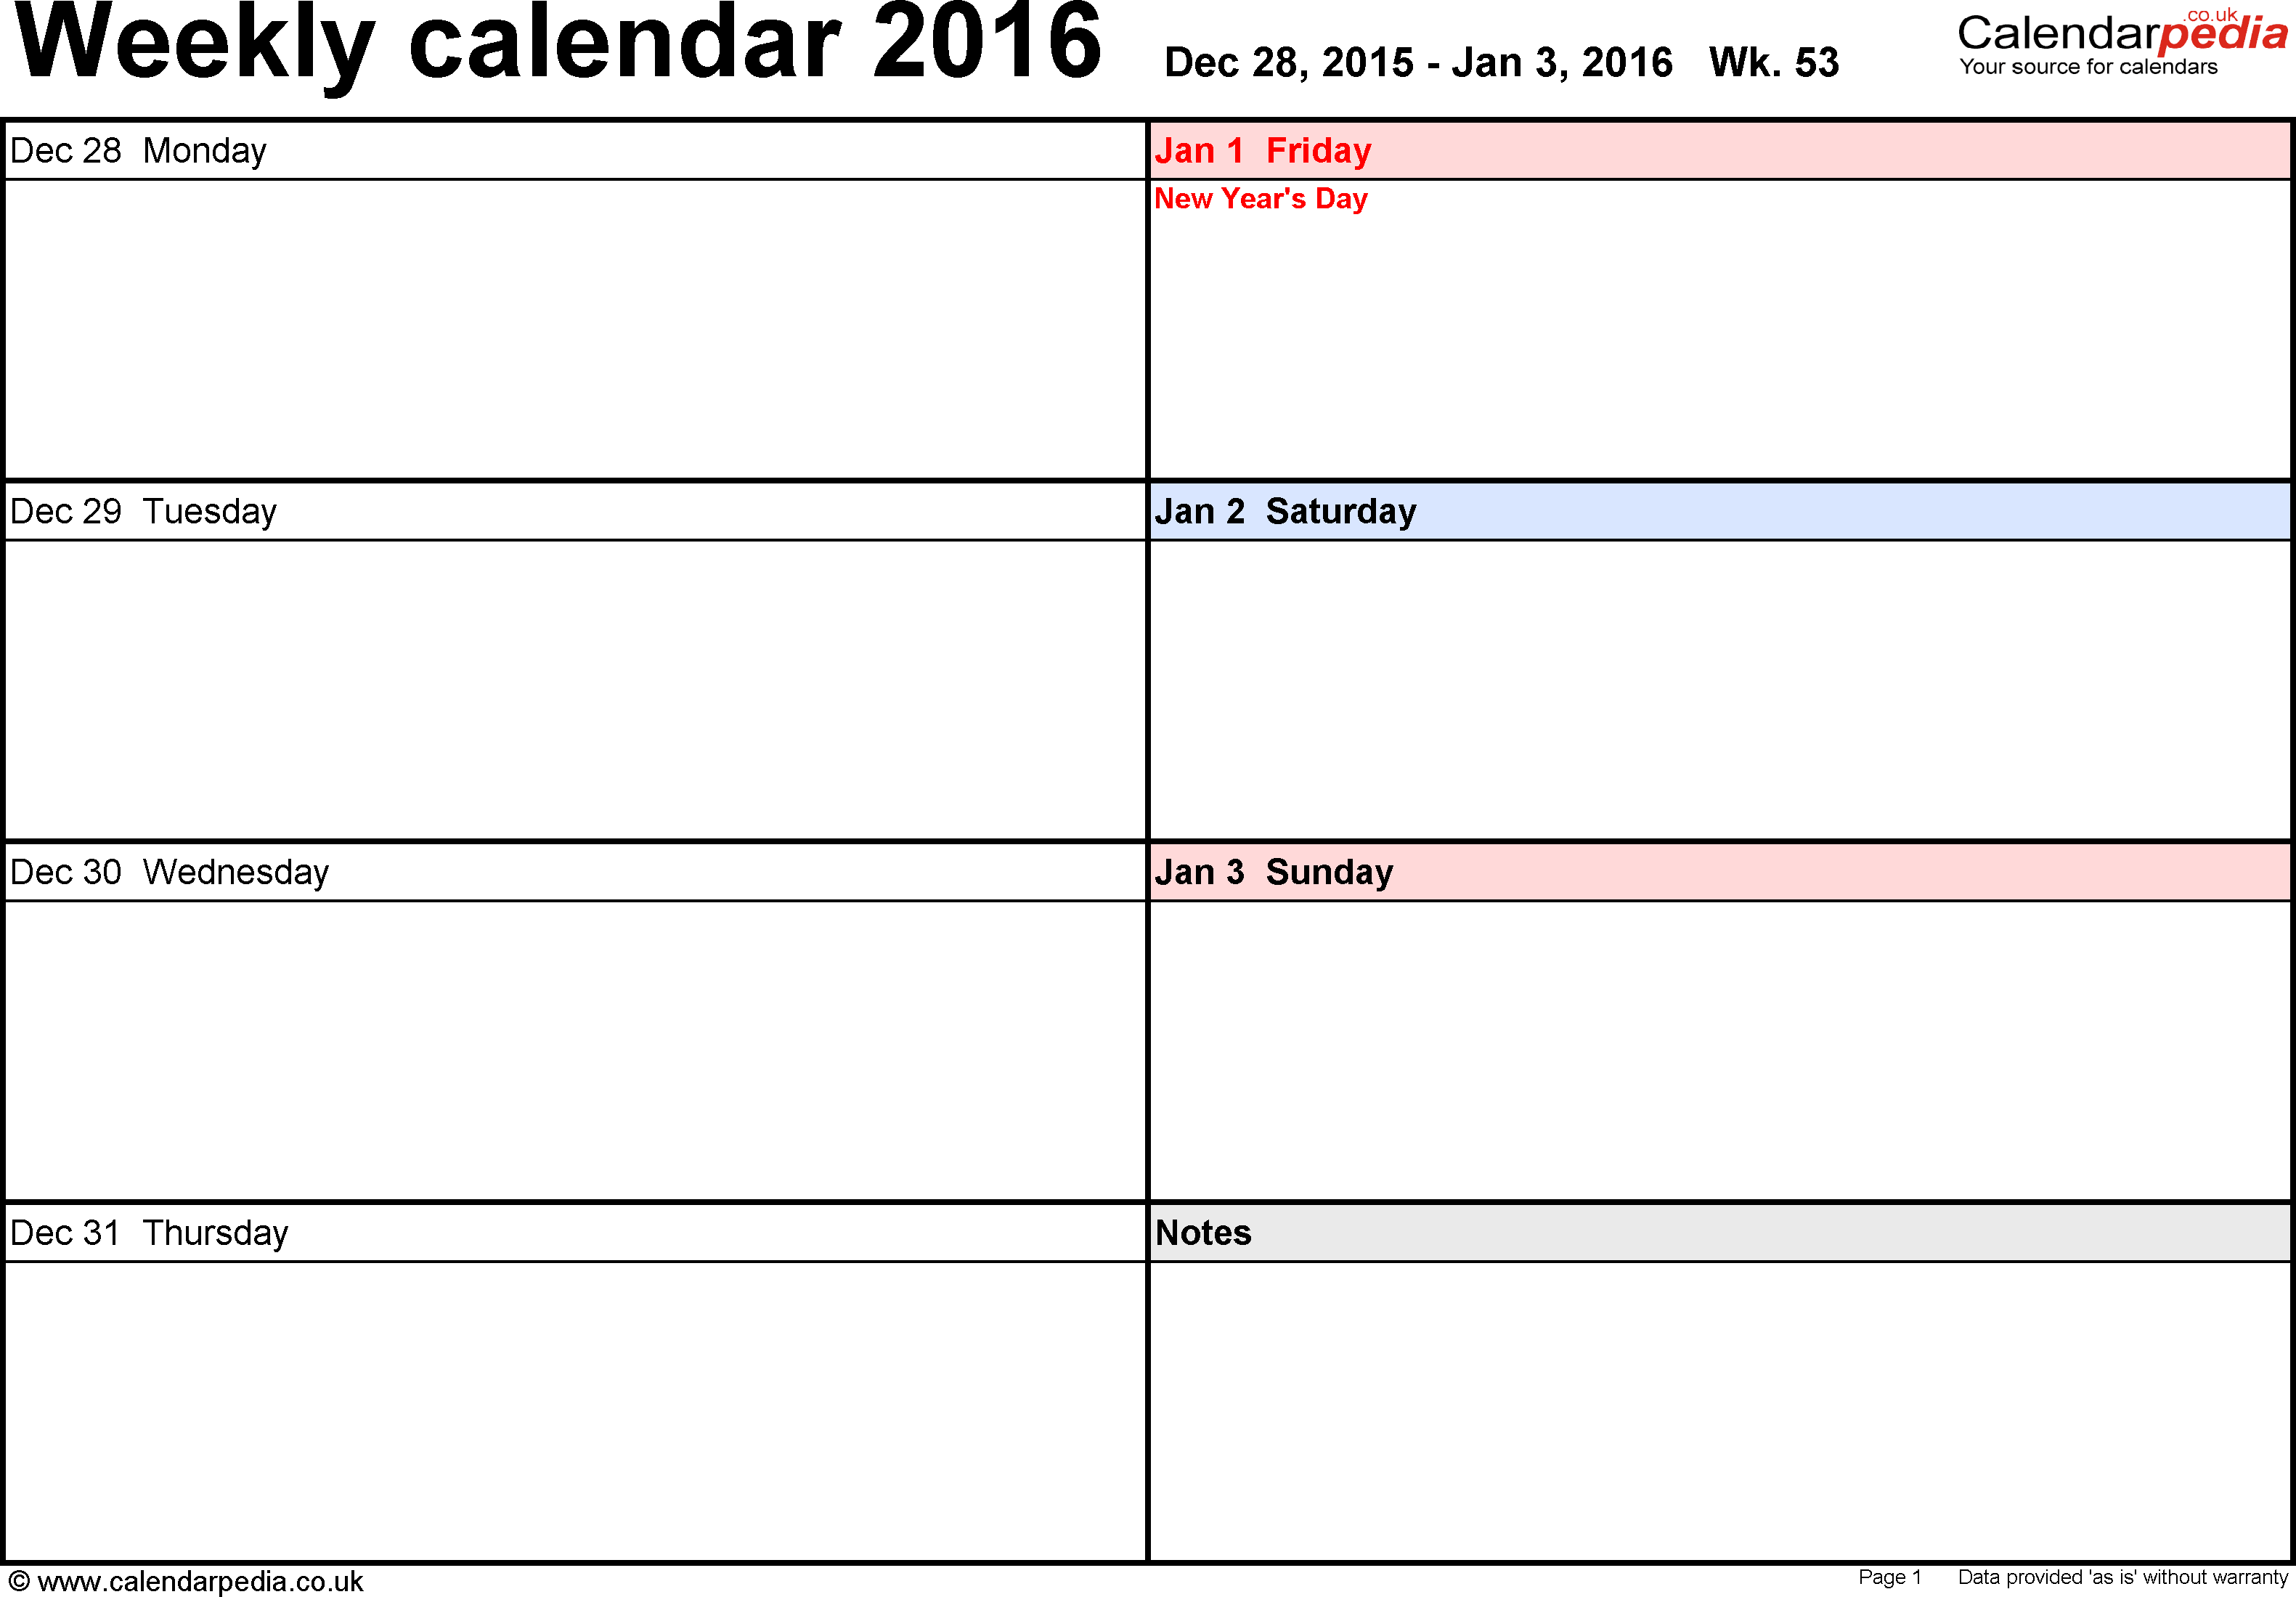 Weekly calendar 2016 UK free printable templates for Word – Monday to Sunday Schedule Template